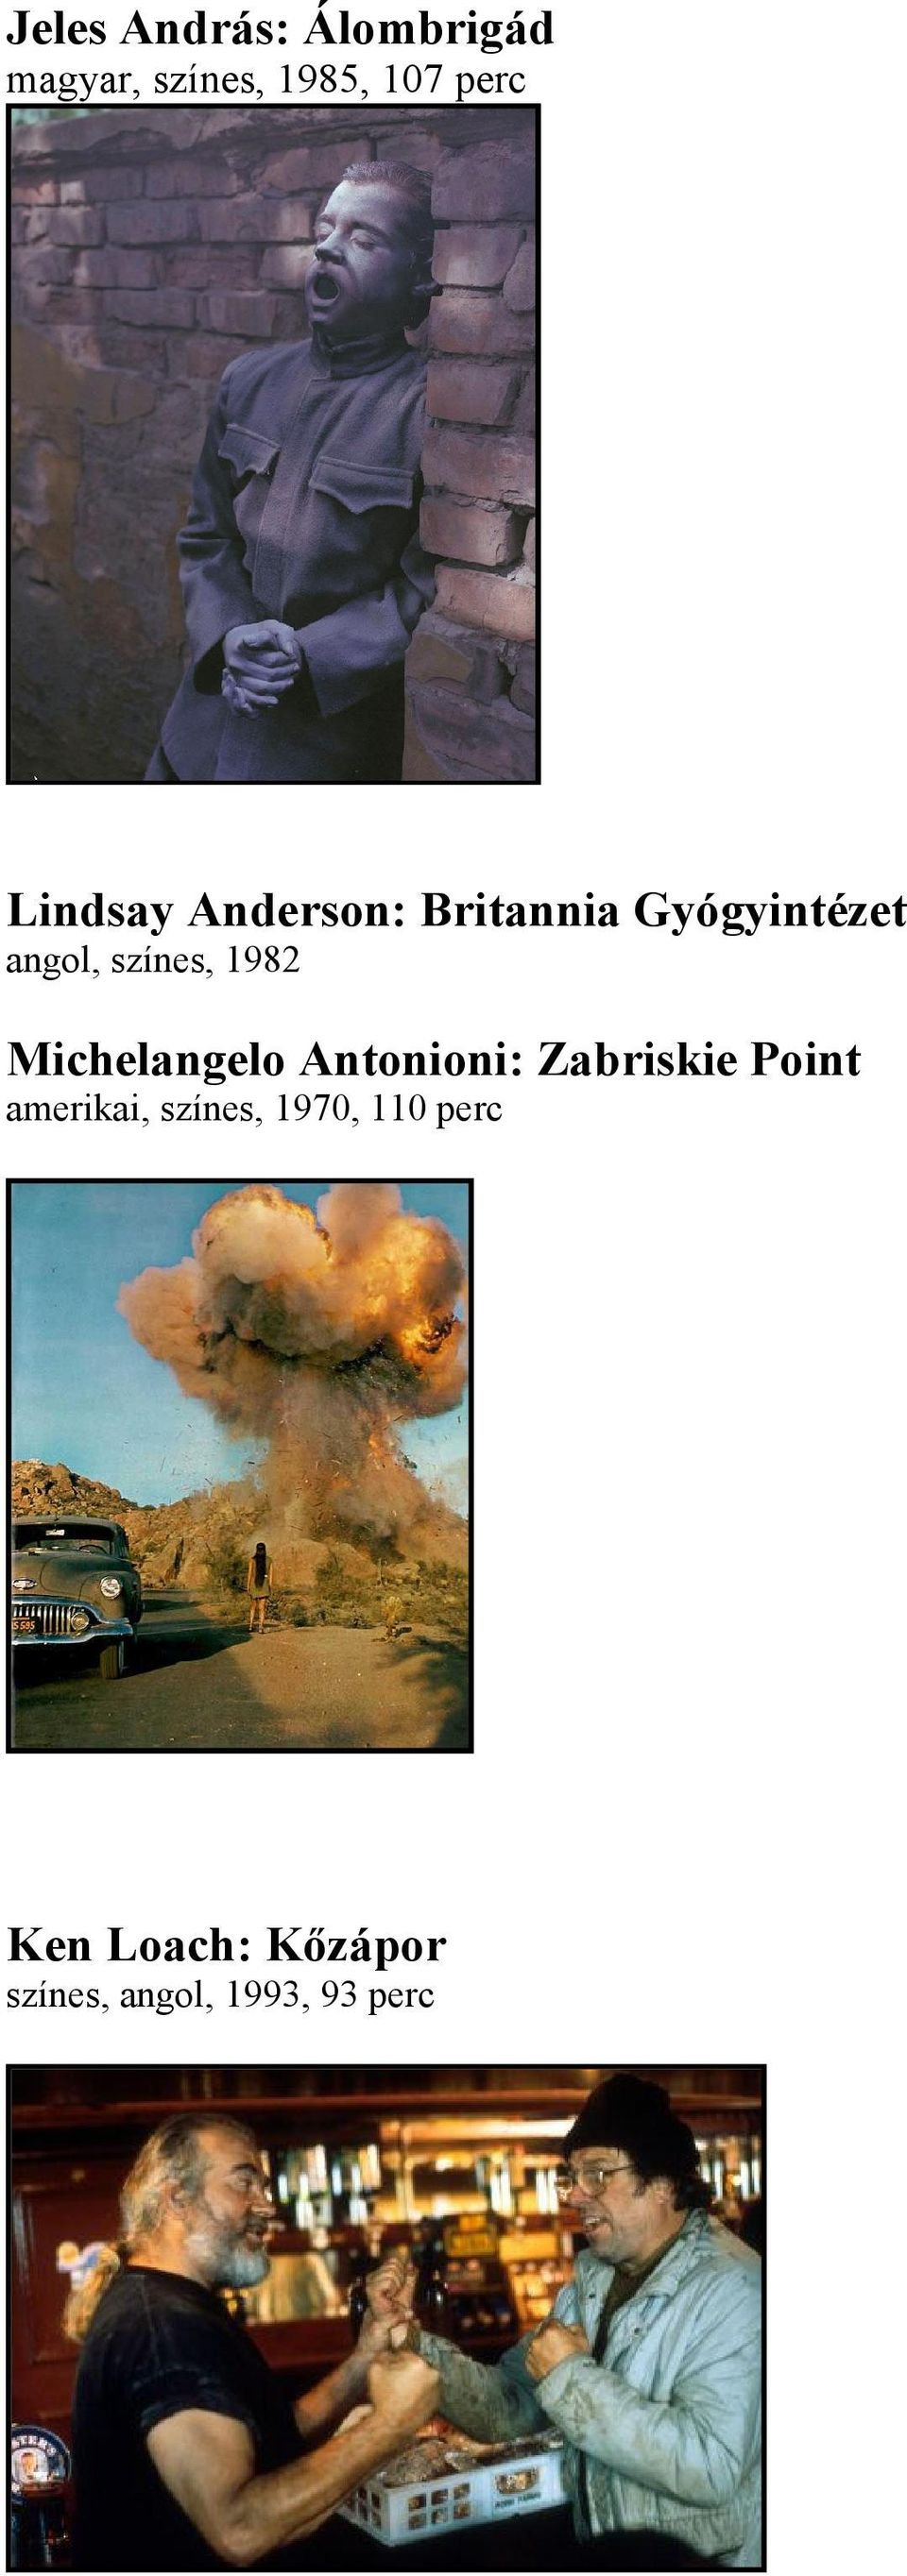 1982 Michelangelo Antonioni: Zabriskie Point amerikai,